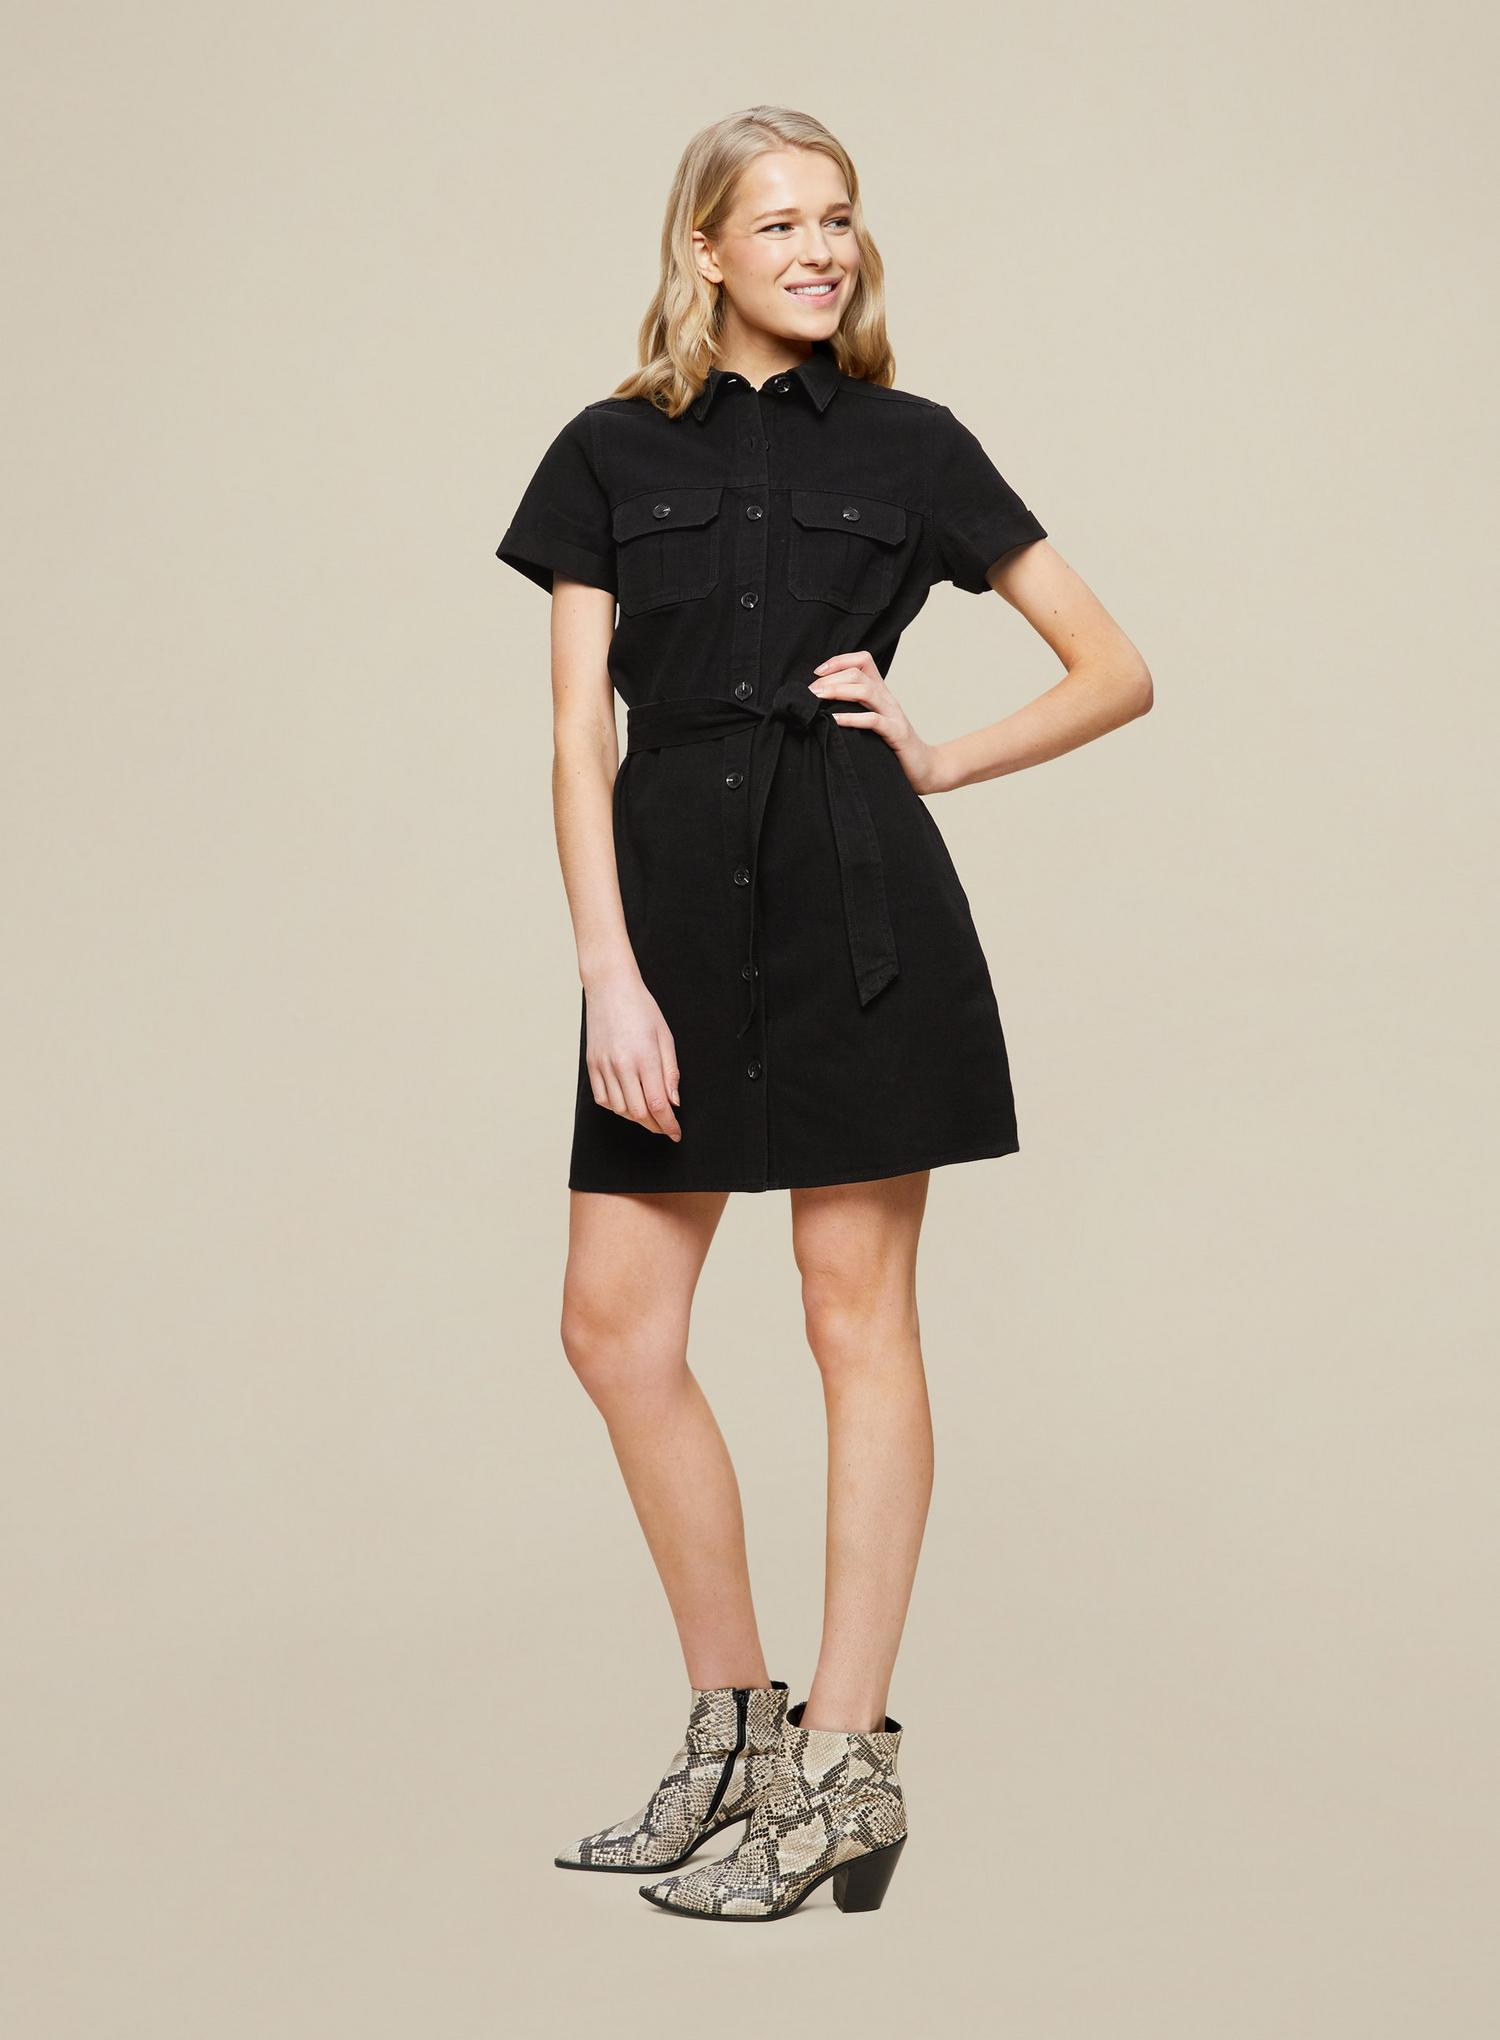 105 Black Denim Shirt Dress image number 3